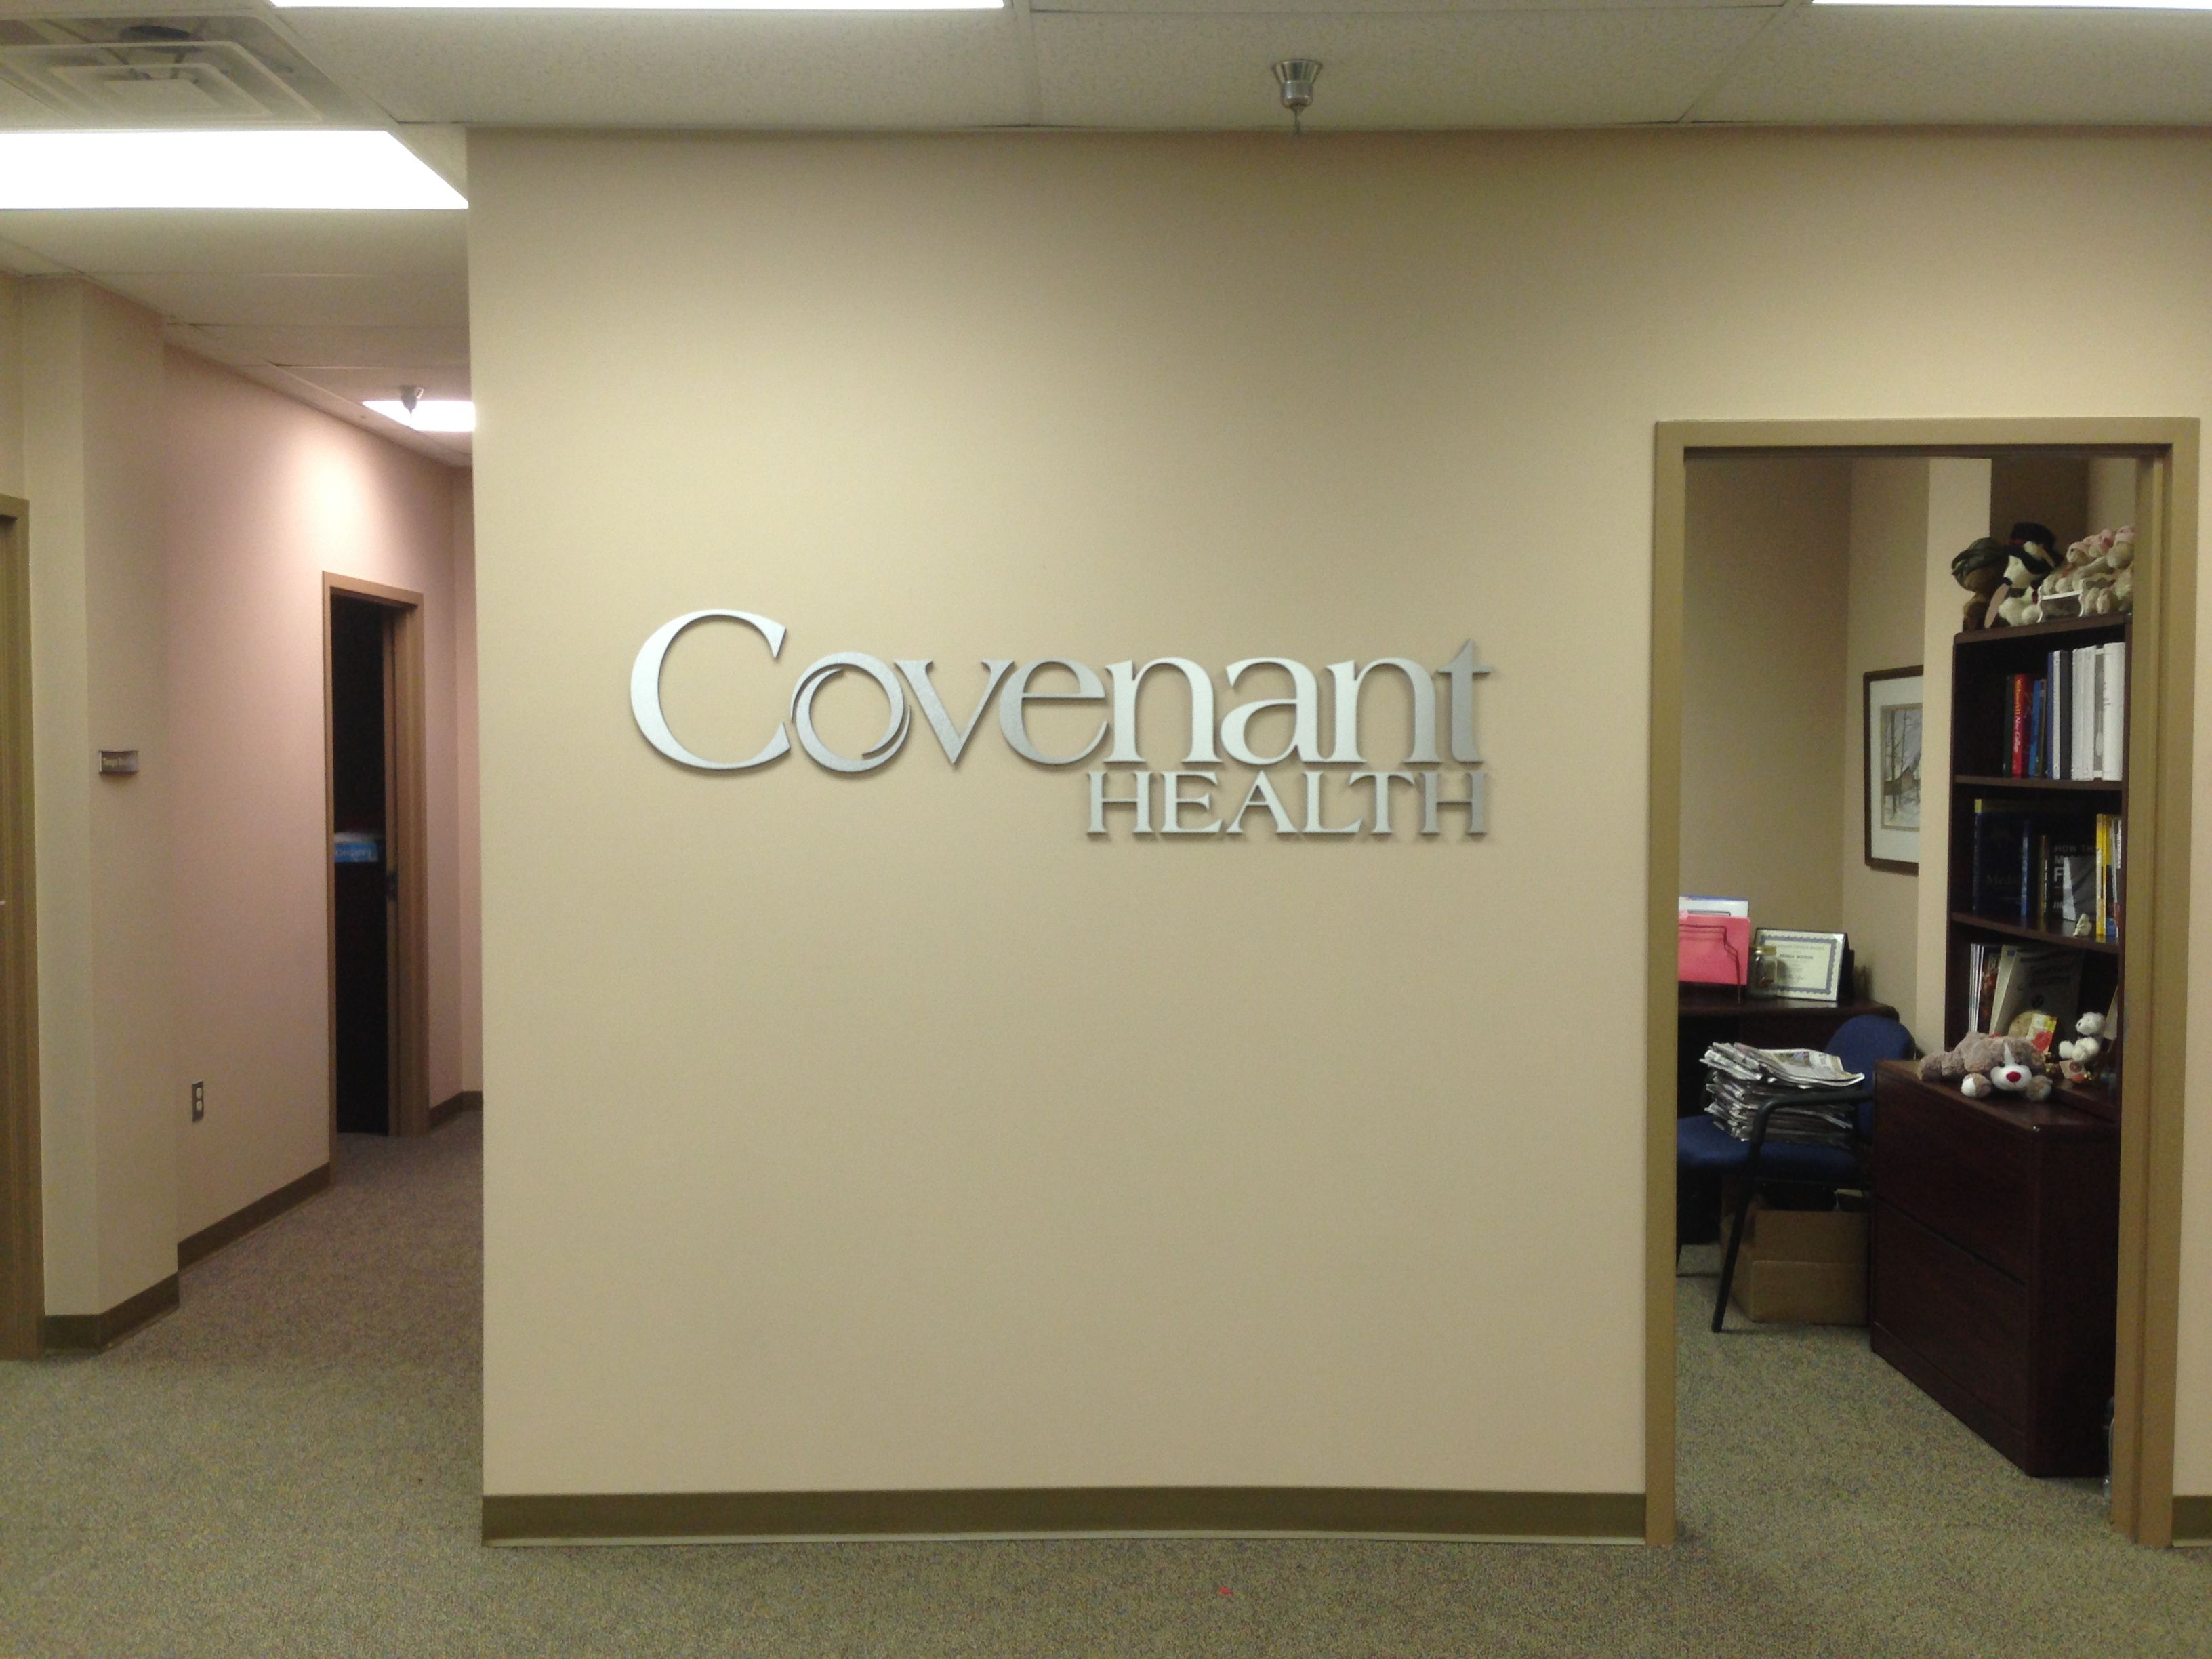 Covenant Health Wall Lettering Knoxville Tn Environmentalgraphics Letter Wall Home Decor Decals Environmental Graphics